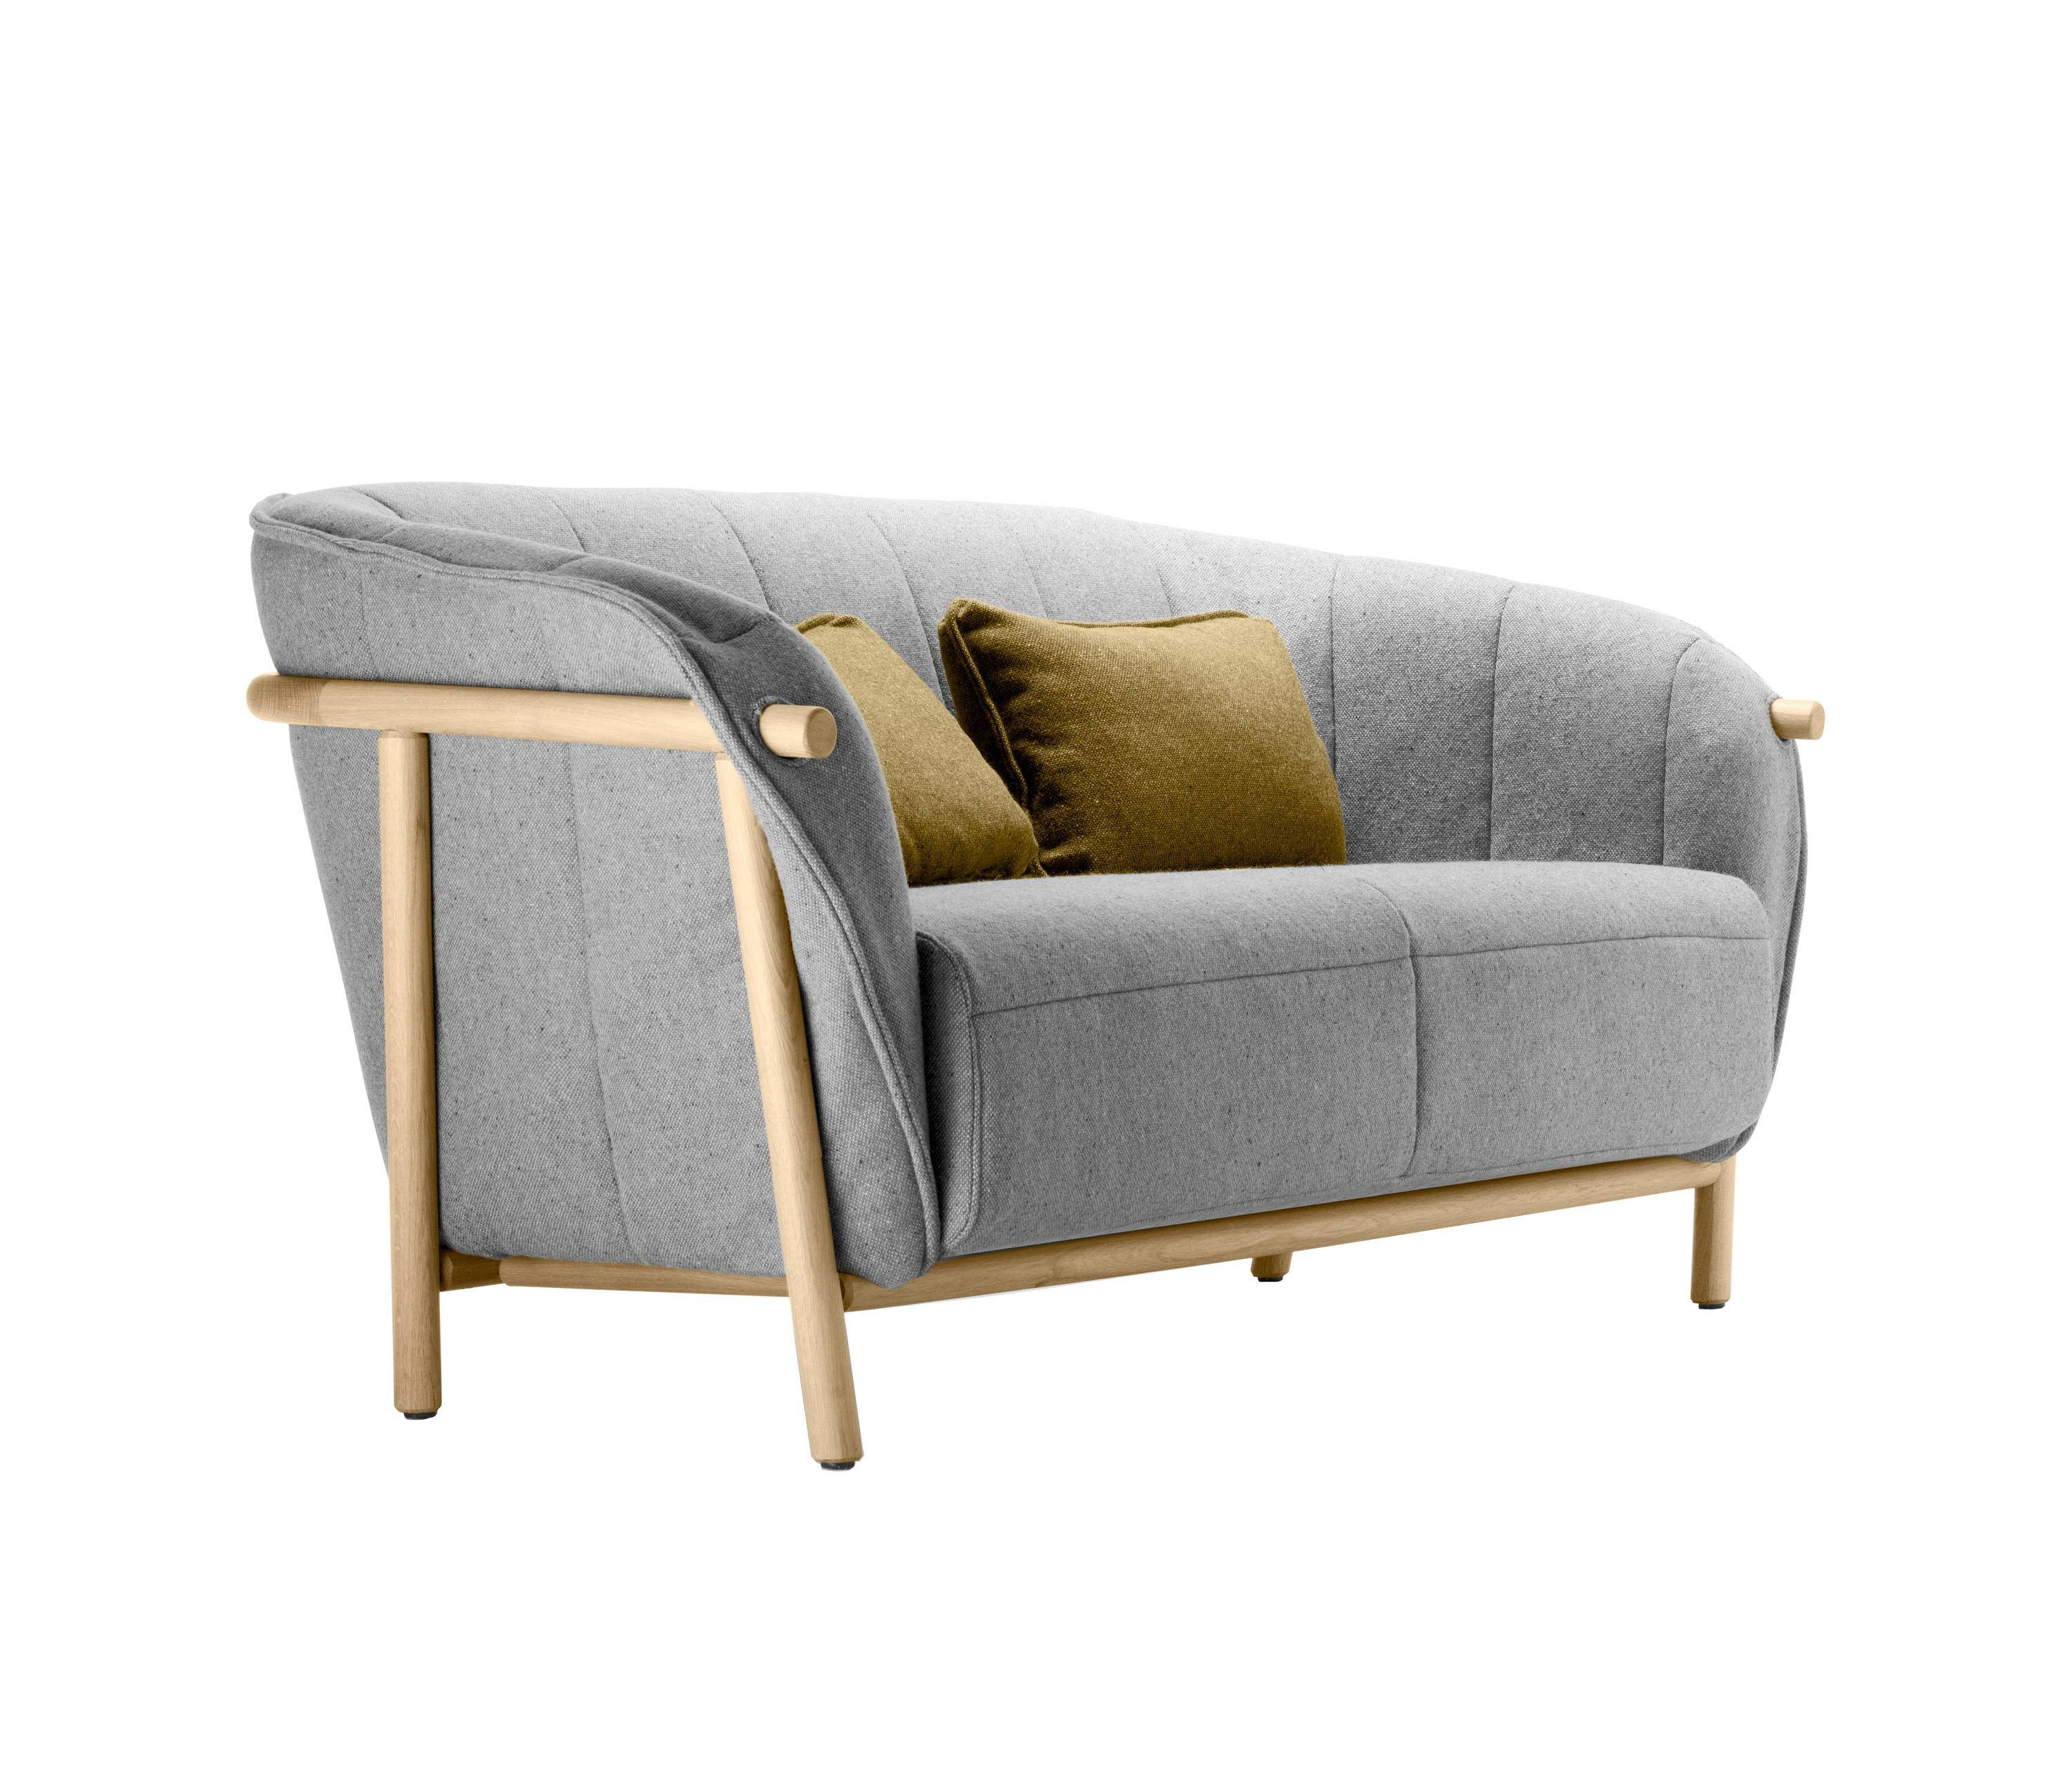 Yas – Lounge Sofas From Bosc | Architonic With Regard To Coffin Sofas (Gallery 12 of 15)